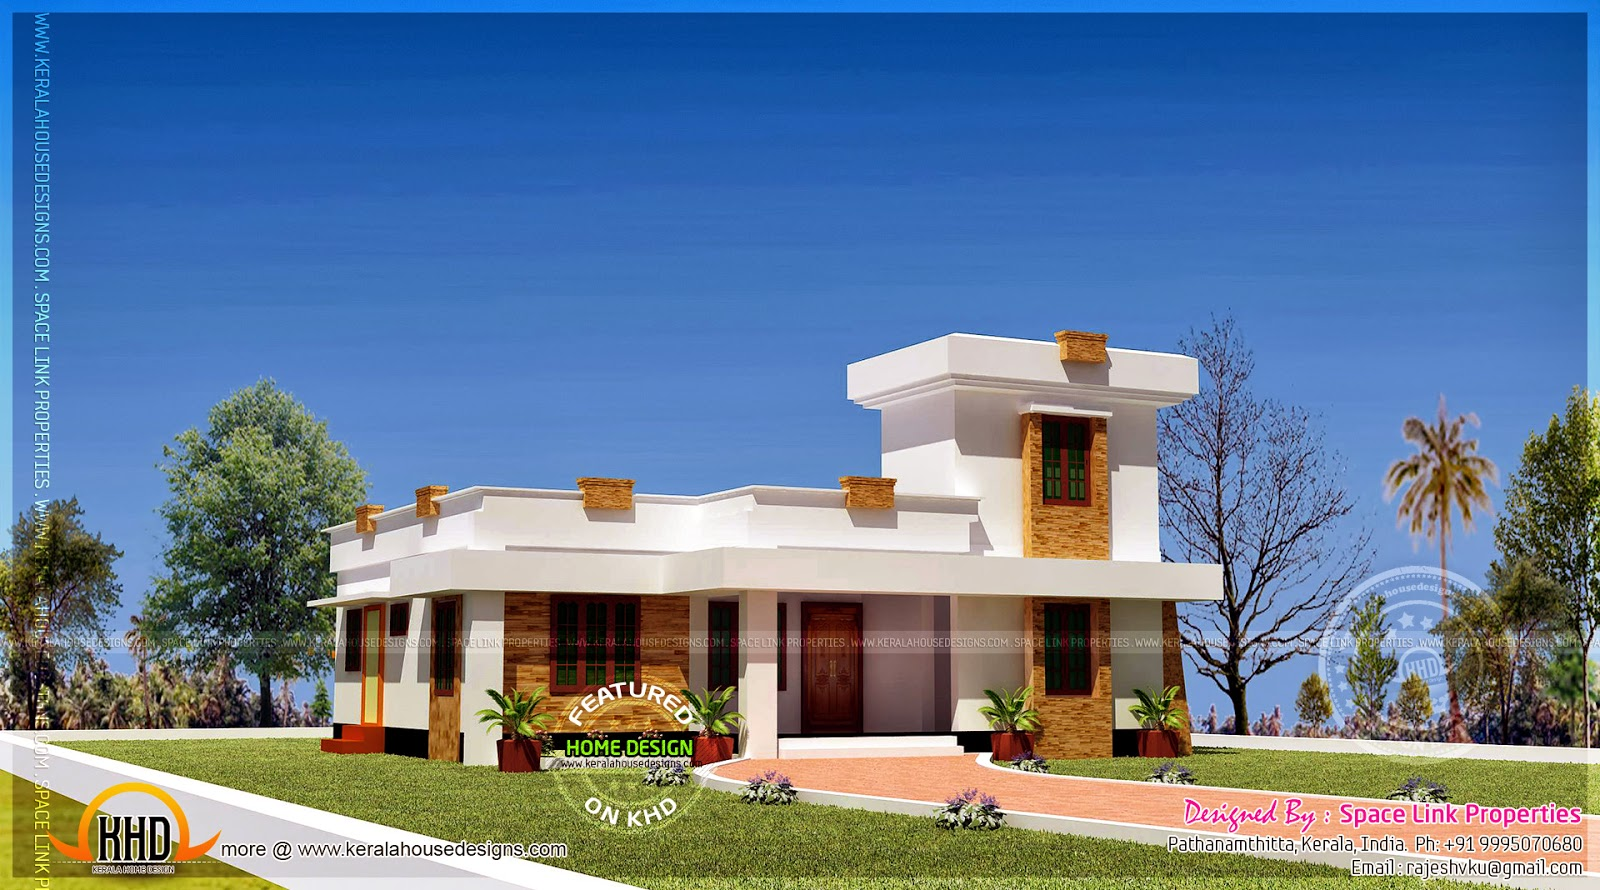 Flat roof style single storied house kerala home design Small flat roof house